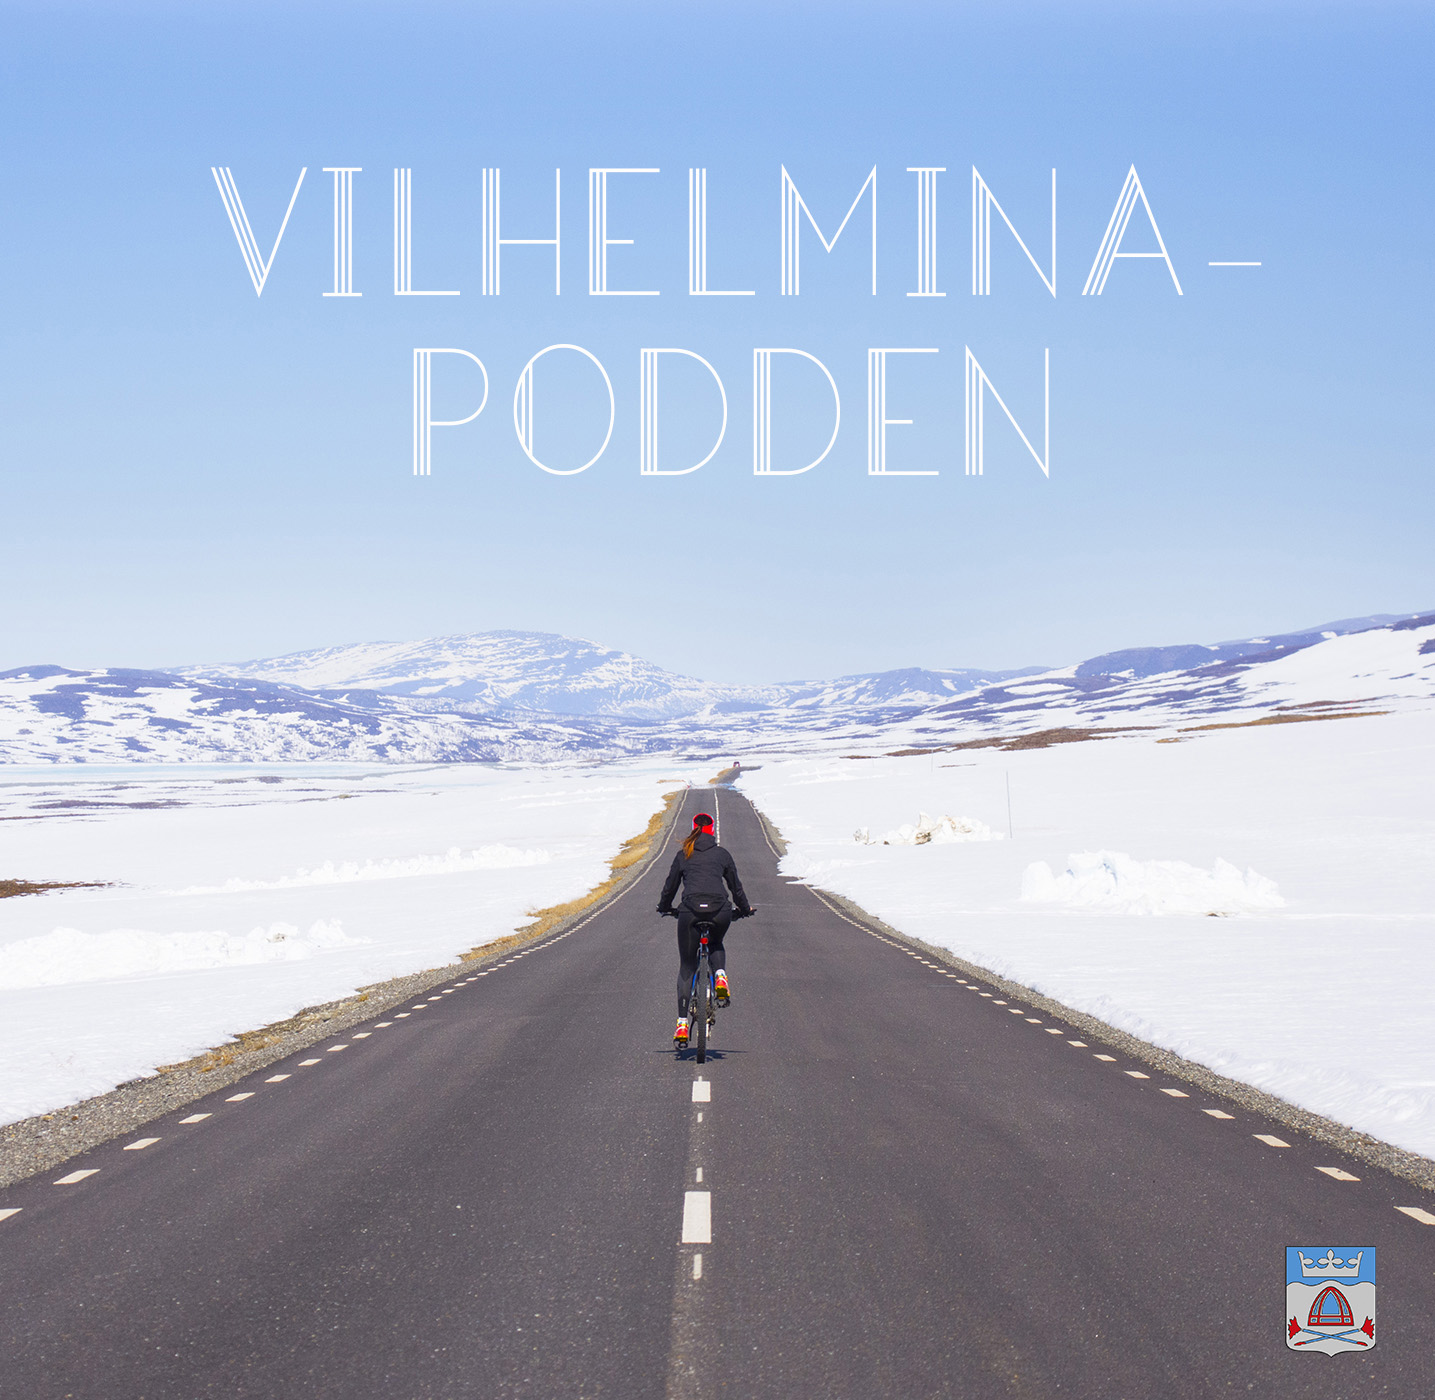 Vilhelminapoddens Podcast